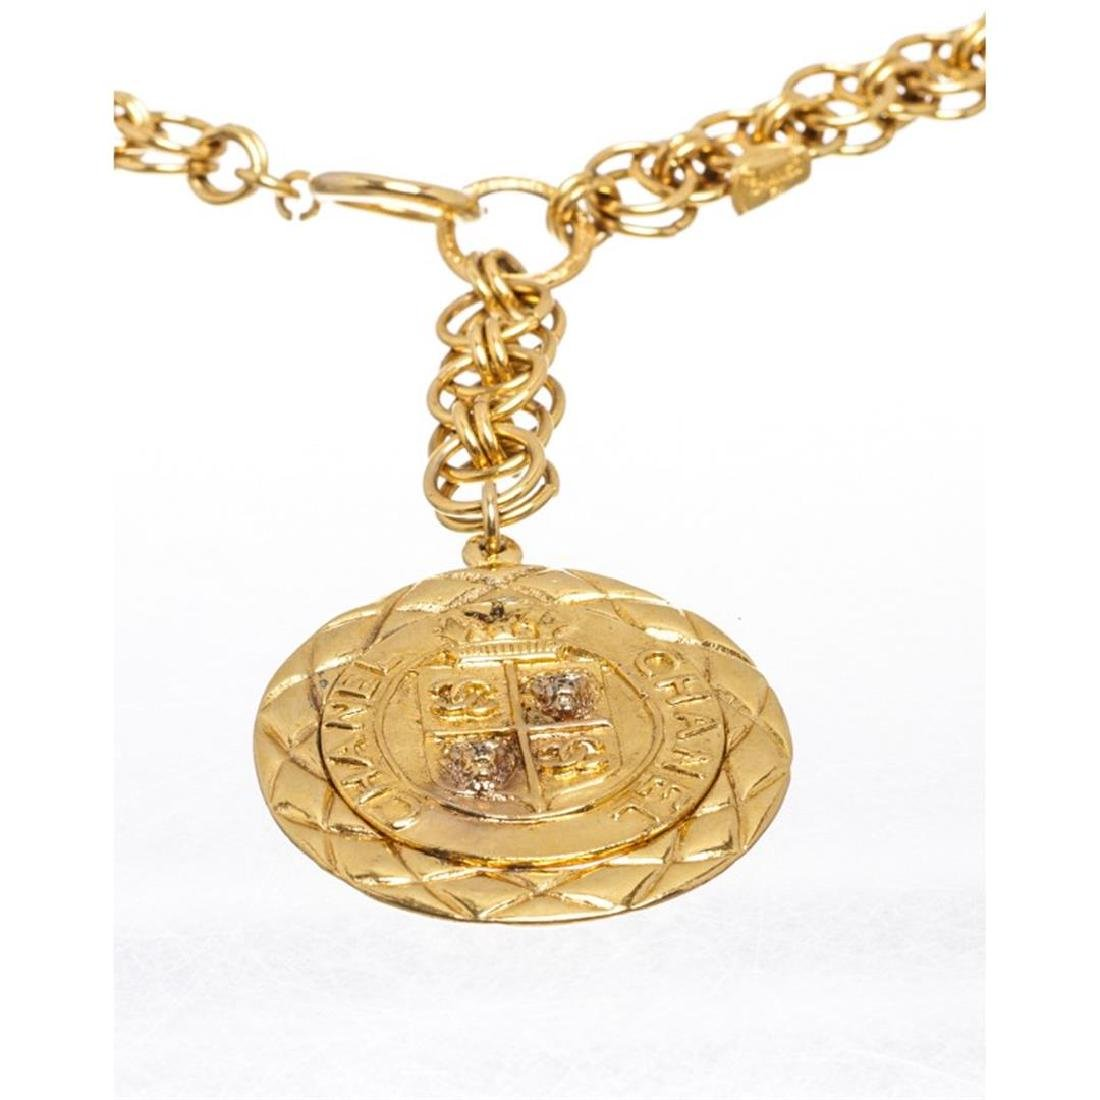 Chanel Gold Chain Link Medallion Long Necklace - 2